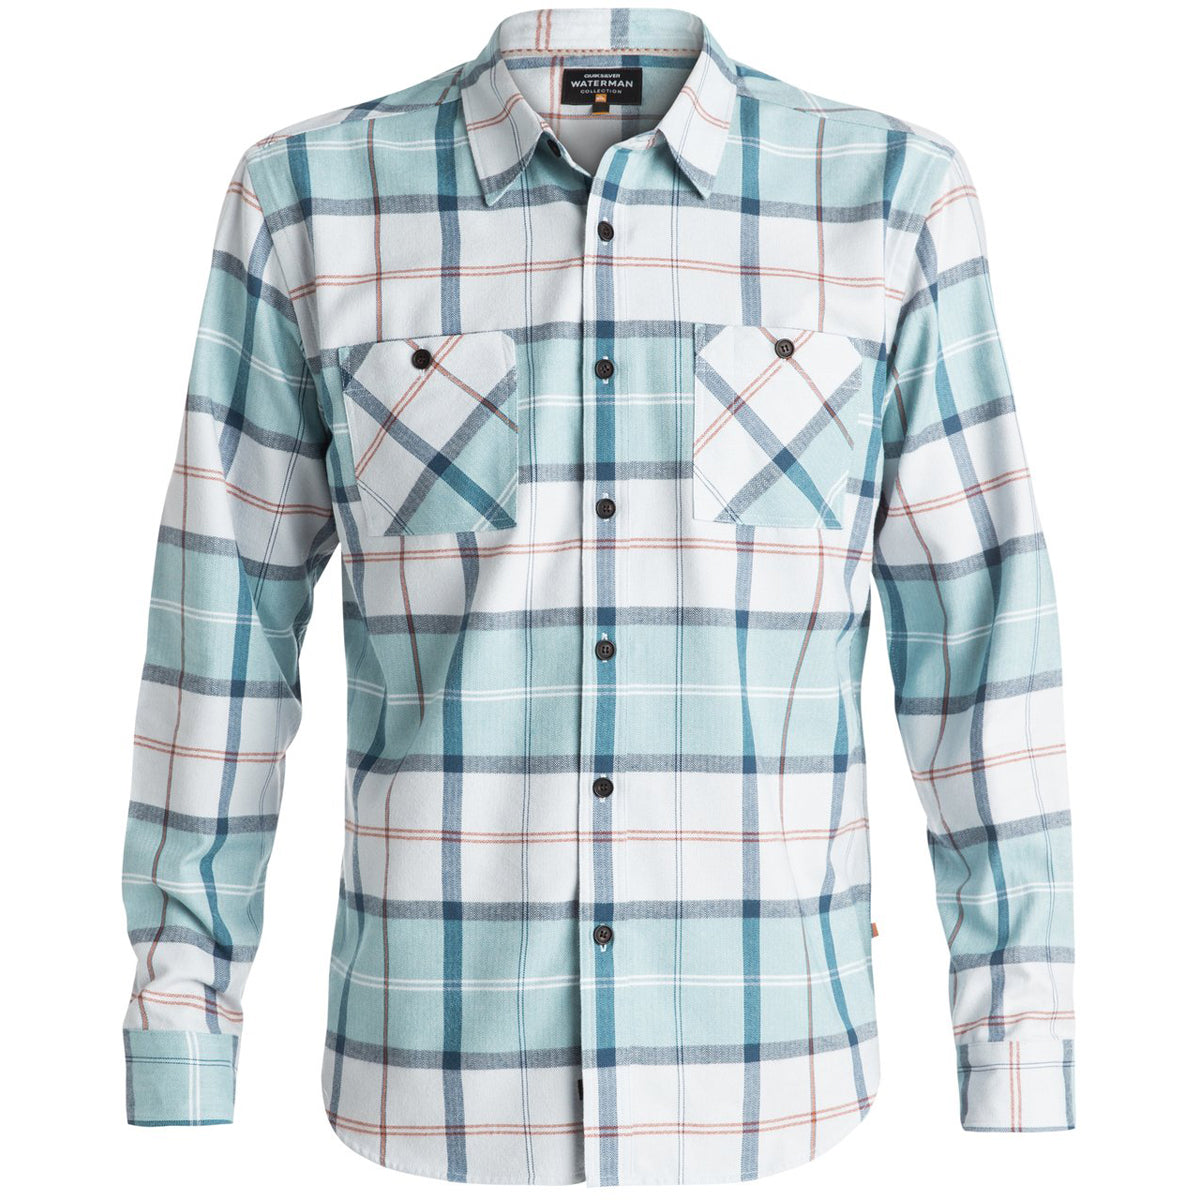 Quiksilver Waterman Day Hike Men's Button Up Long-Sleeve Shirts-AQMWT03302